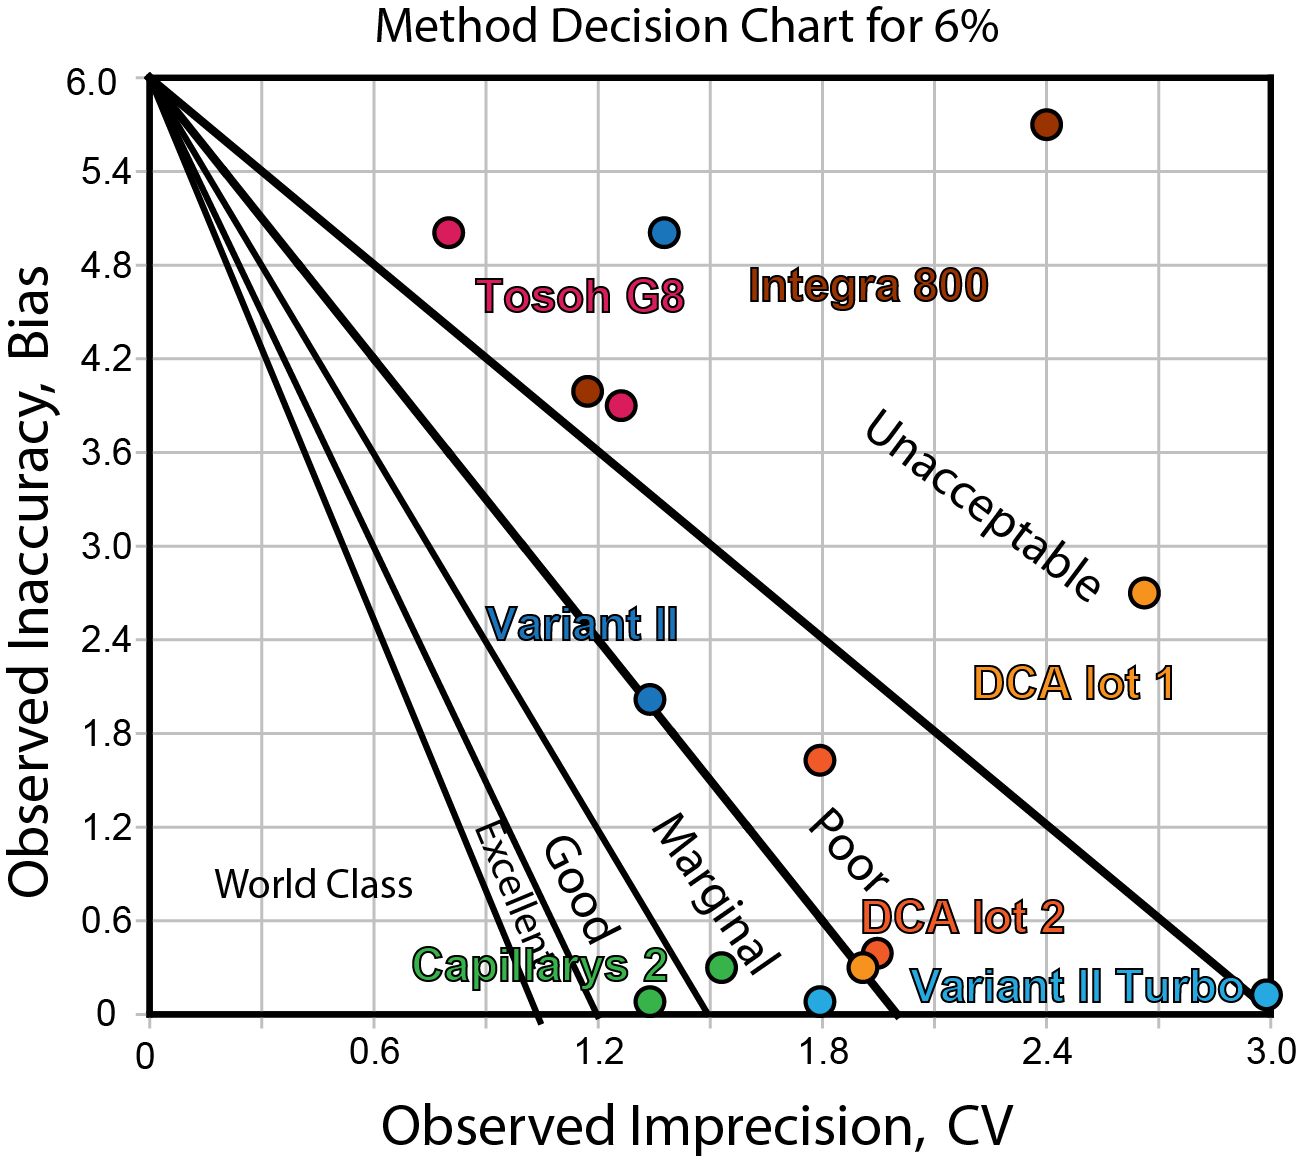 Sigma Decision Chart of 6 HbA1c methods